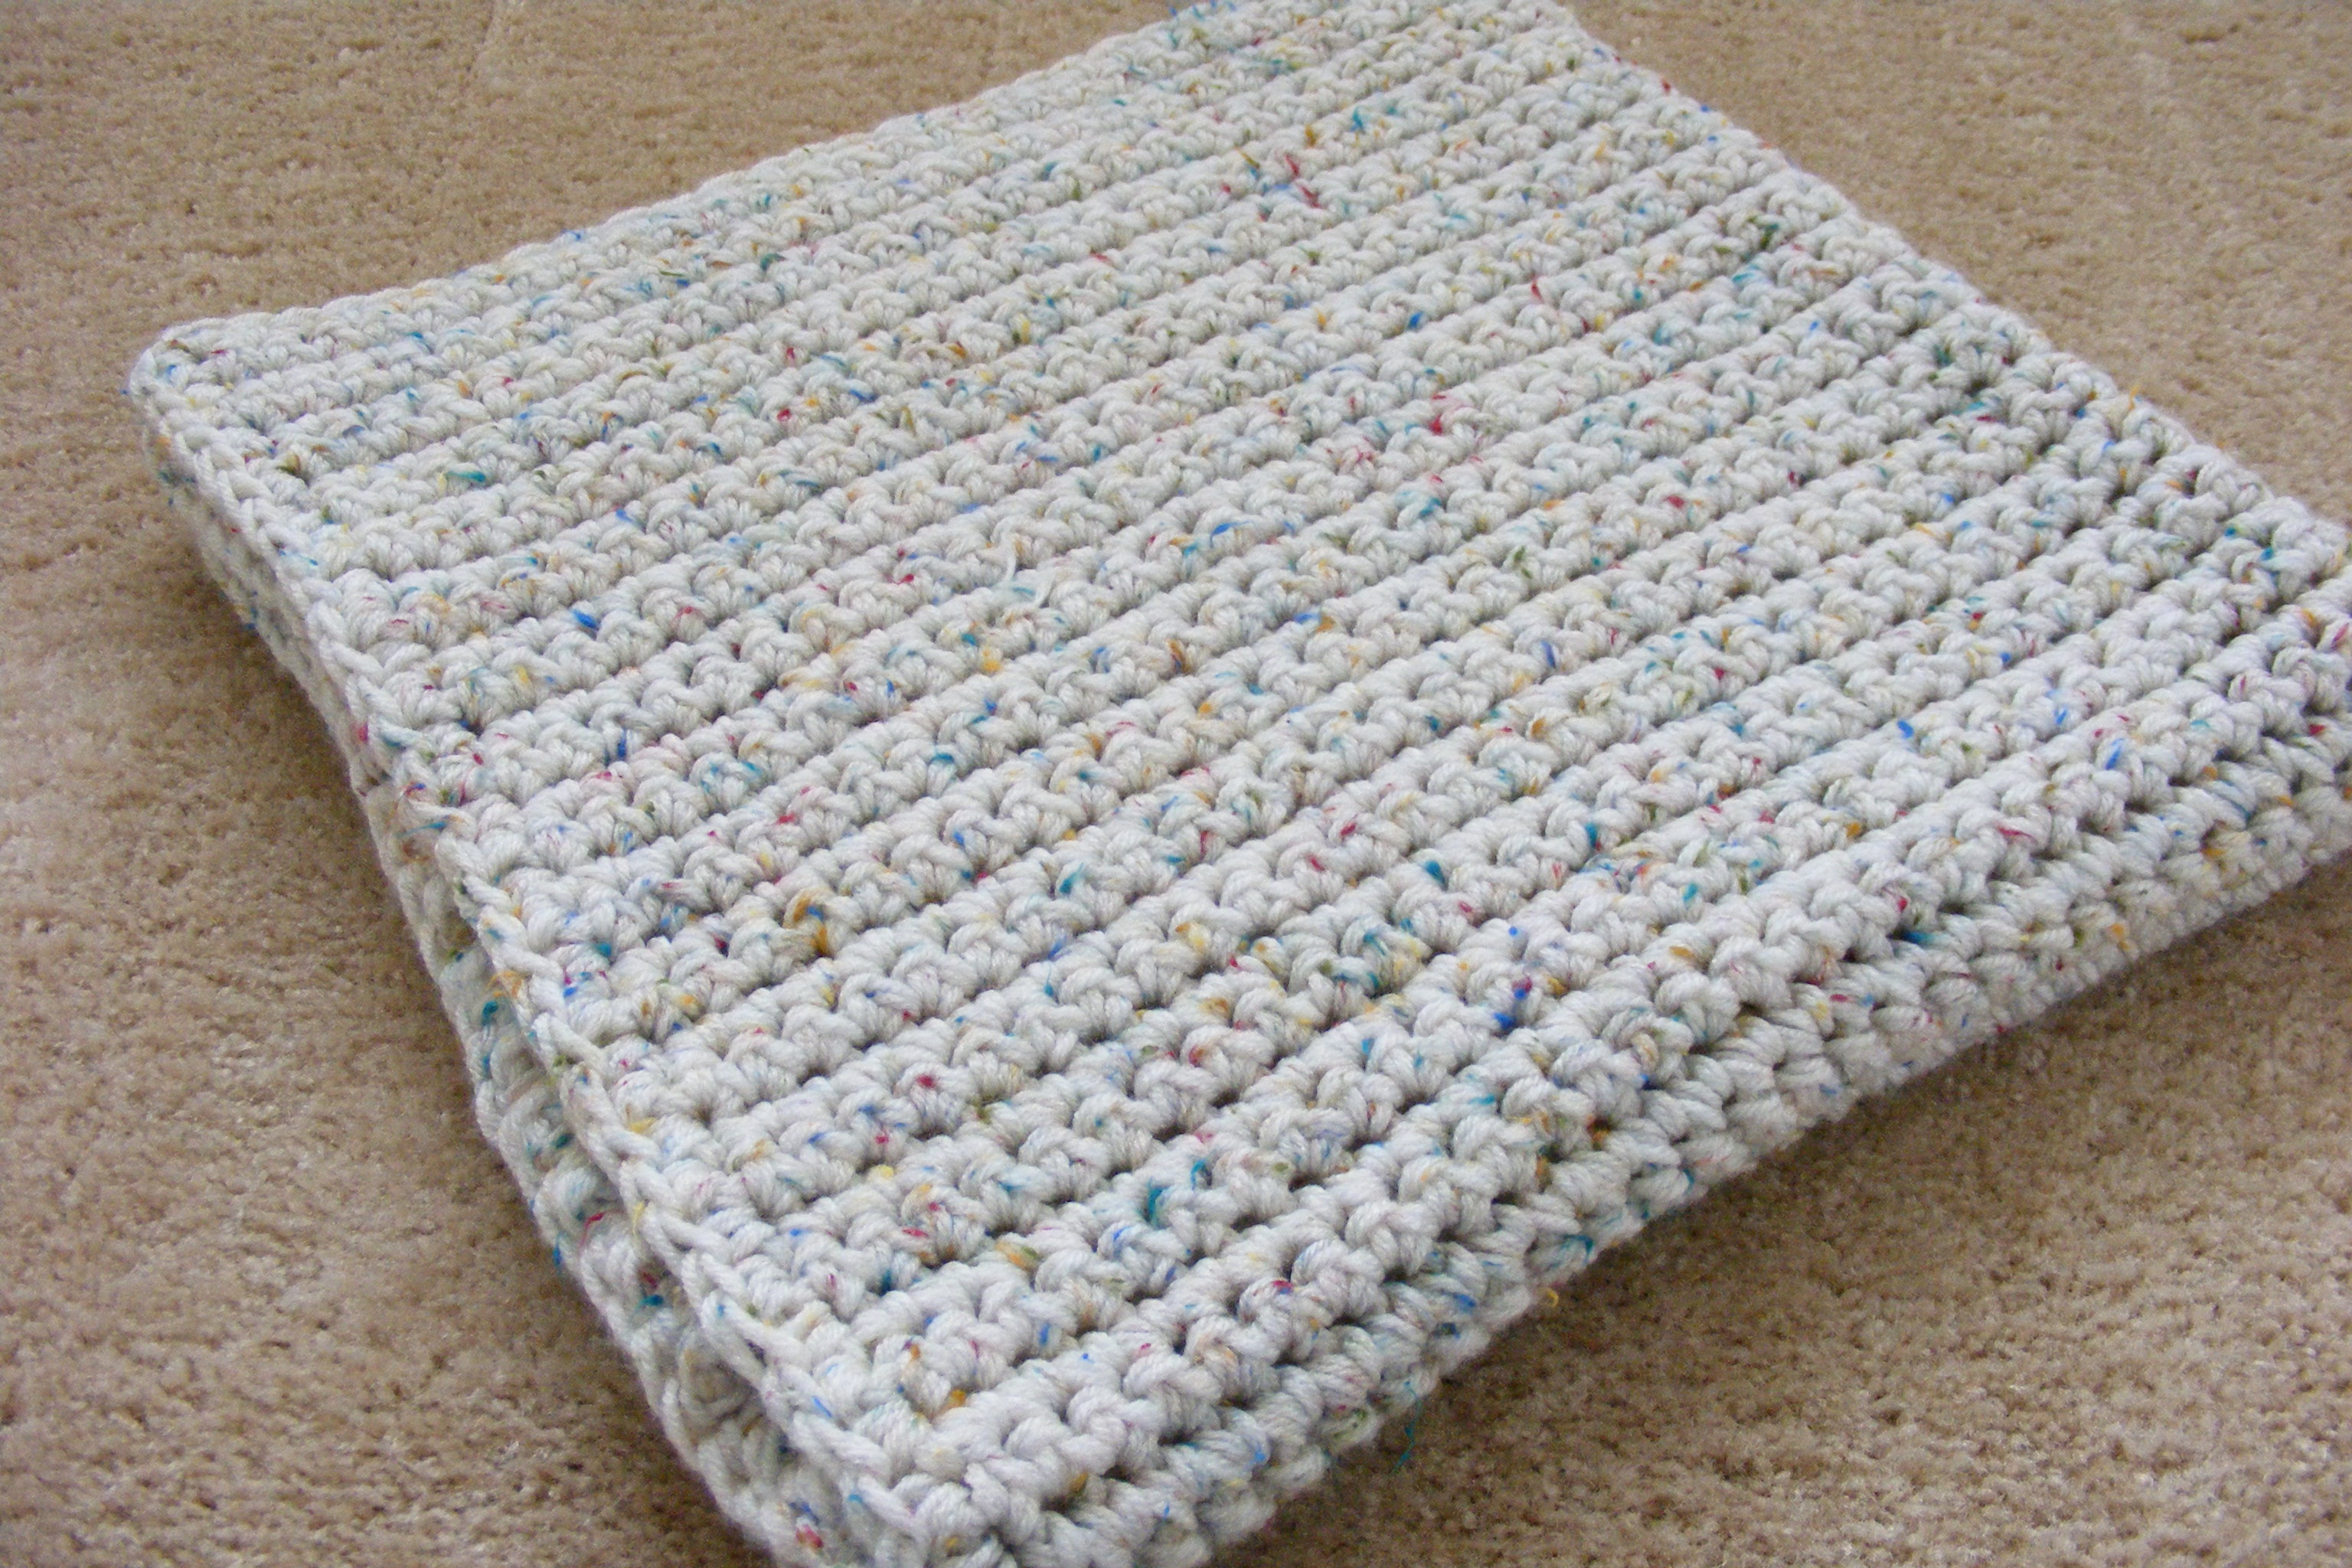 Crochet A Baby Blanket : Single Crochet Baby Blanket GretchKals Yarny Adventures